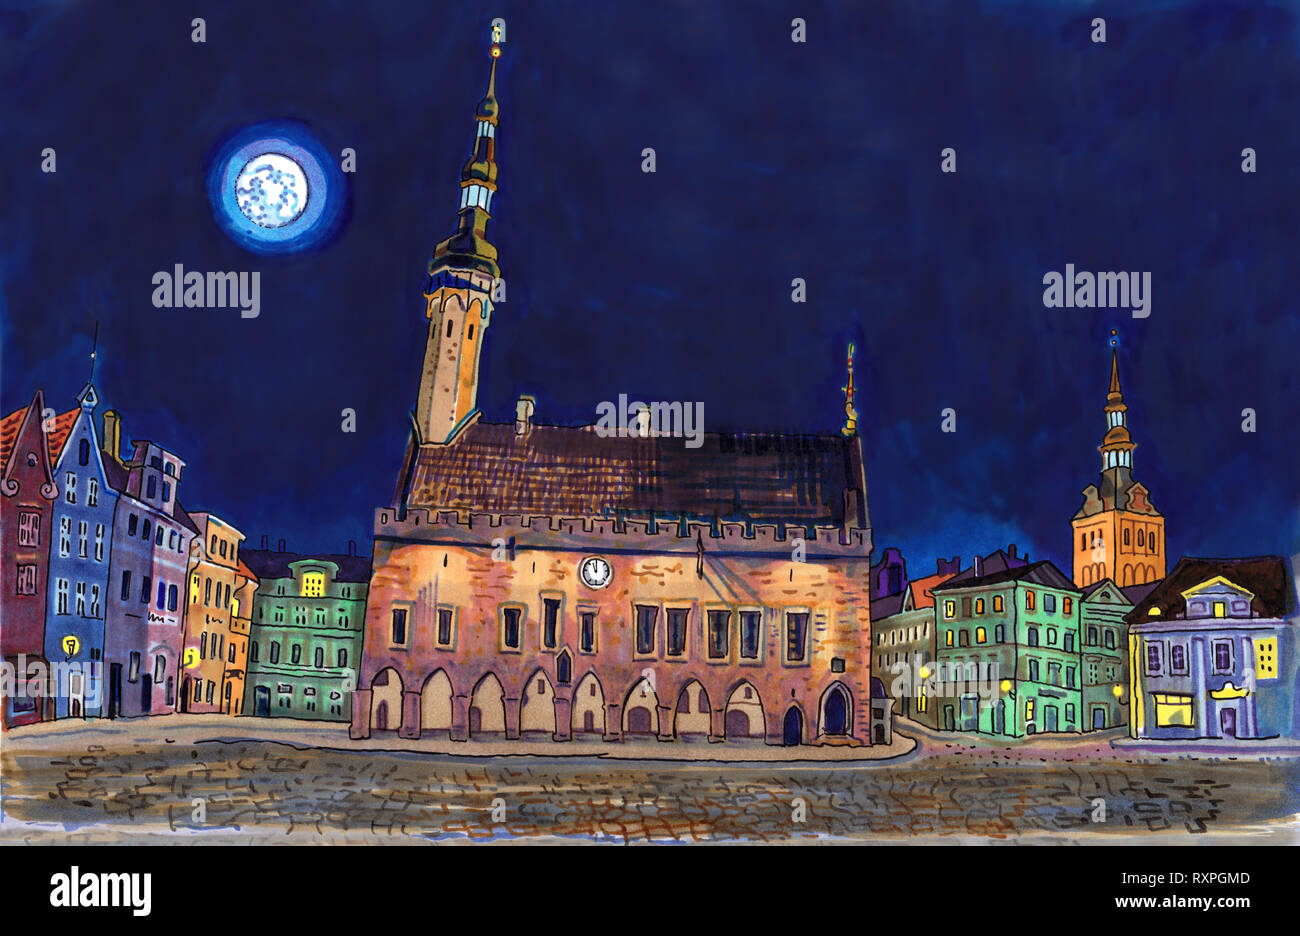 Town Hall Square in Tallinn Old Town at night. Historical architecture, St. Nicholas or Niguliste church, city lights, full moon. Baltic states Stock Photo